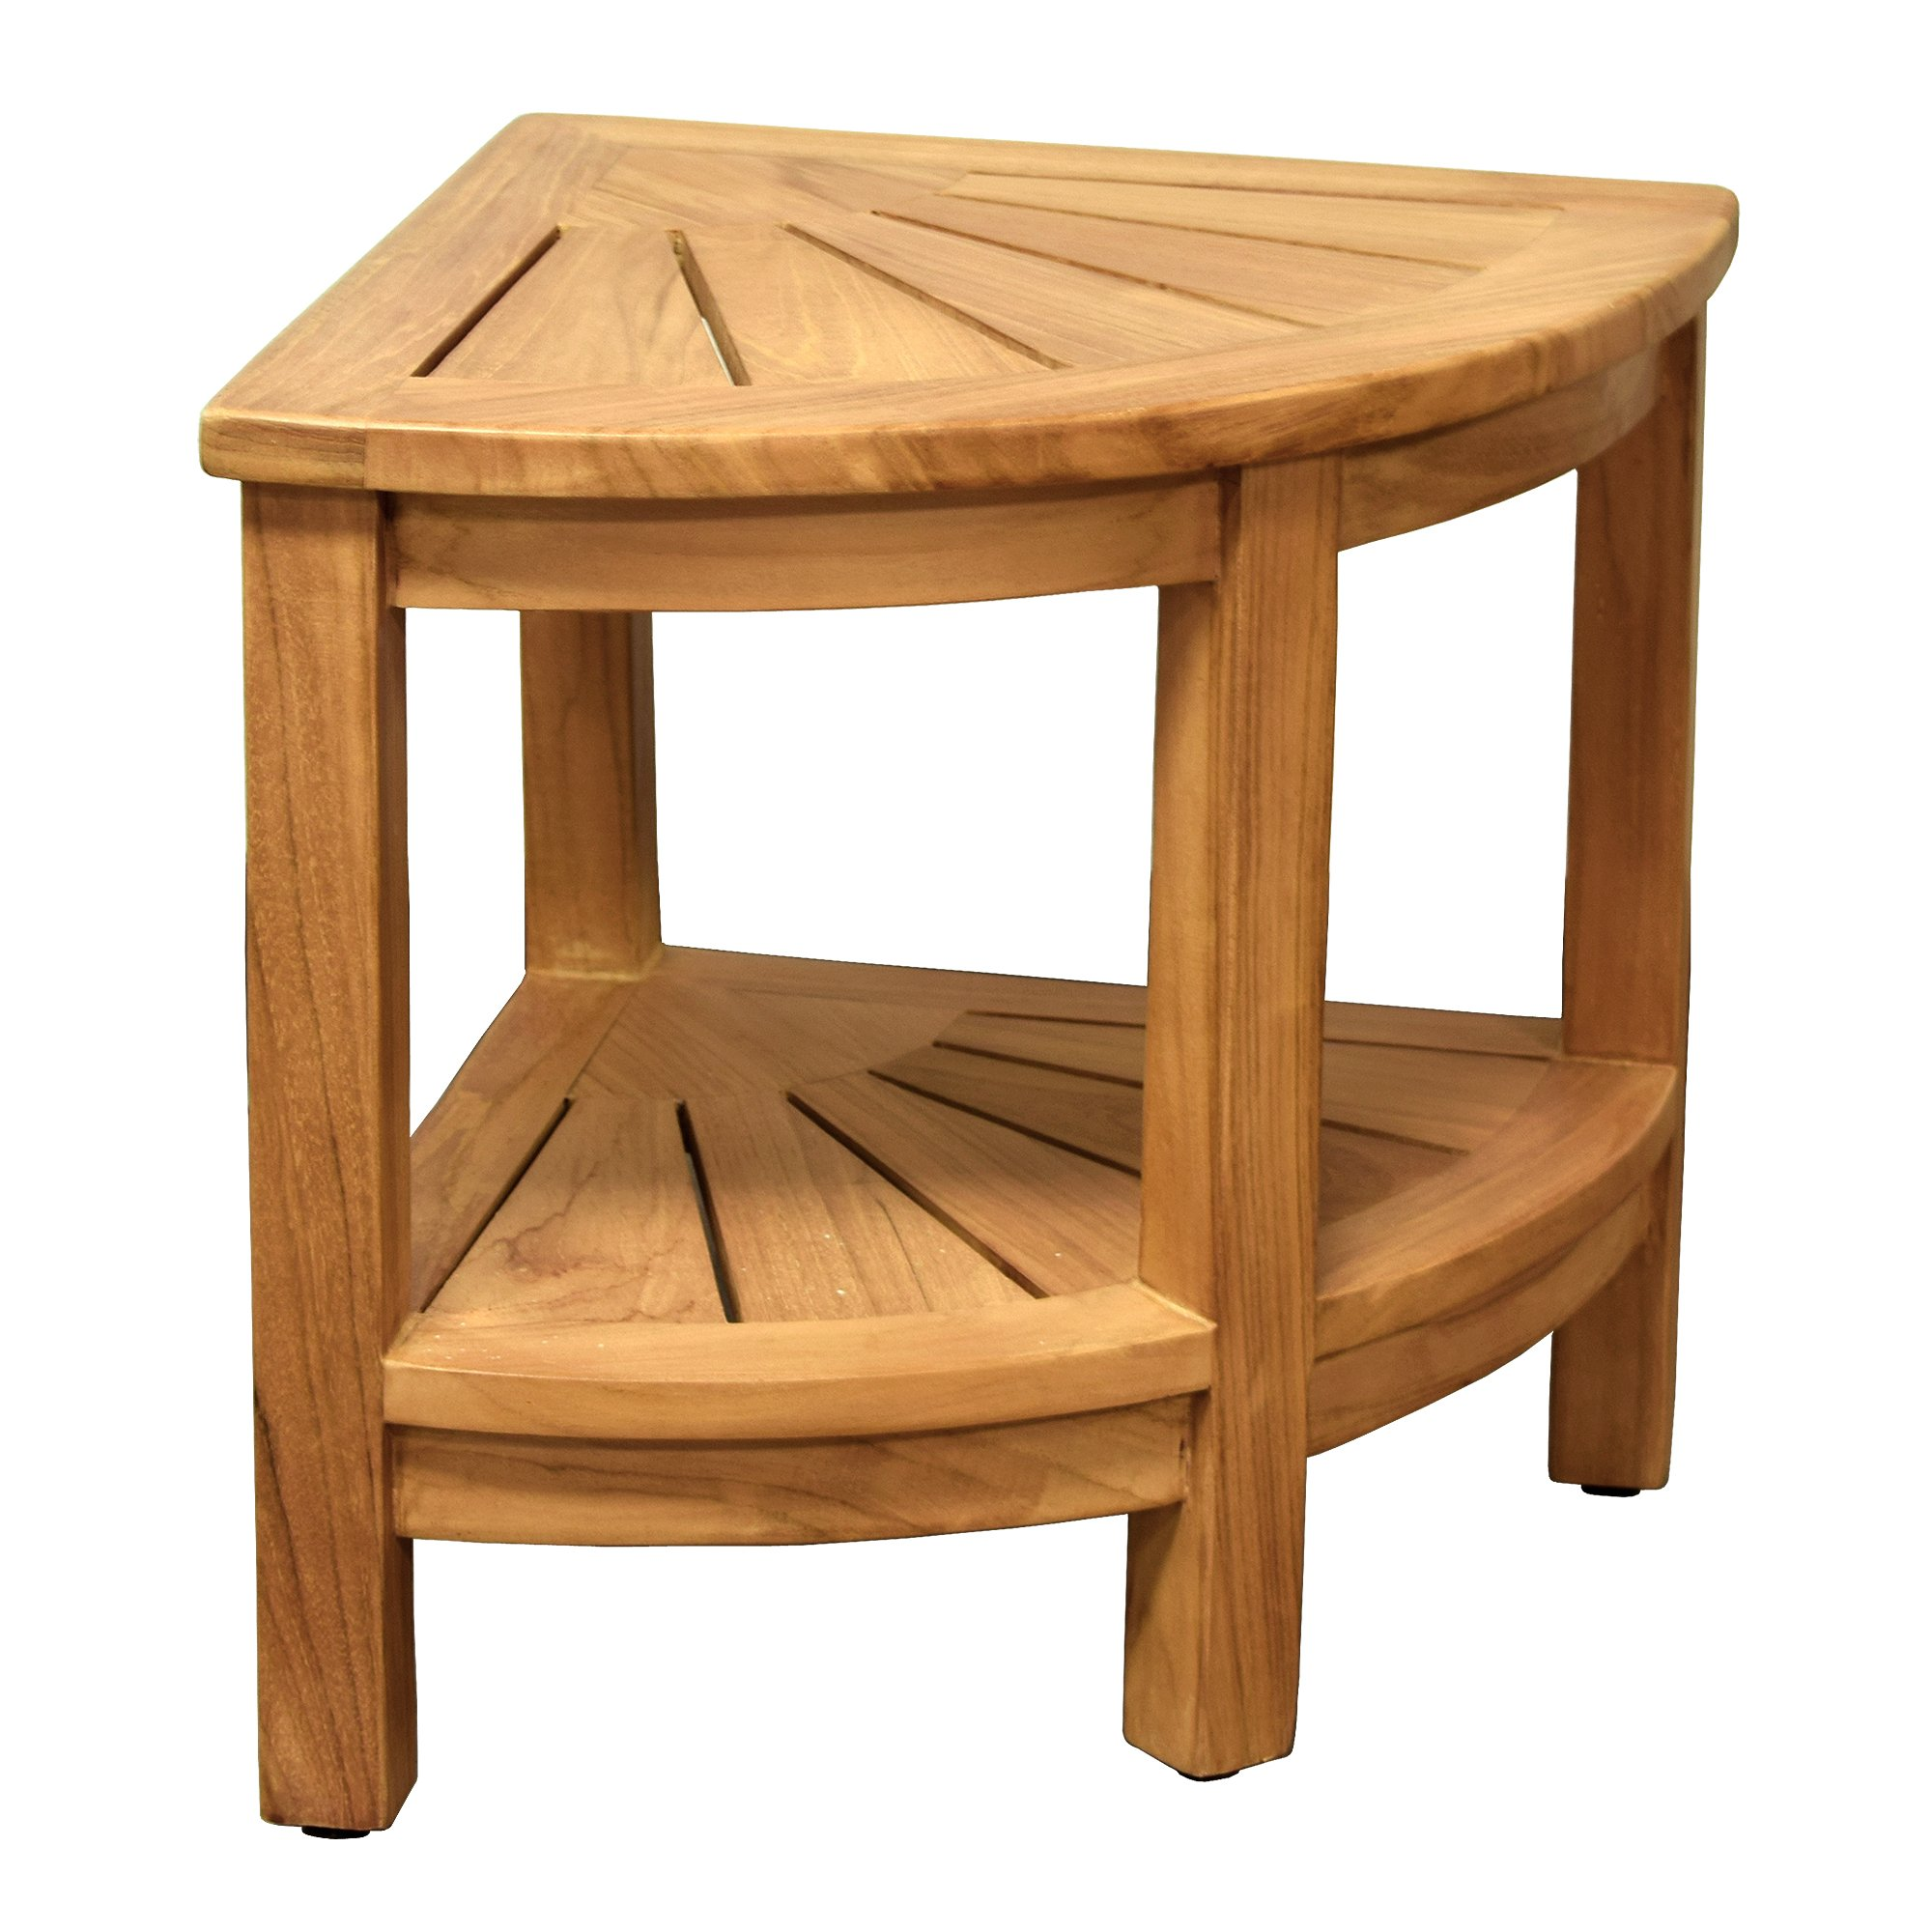 Spa Teak Wooden Free Standing Corner Shower Stool